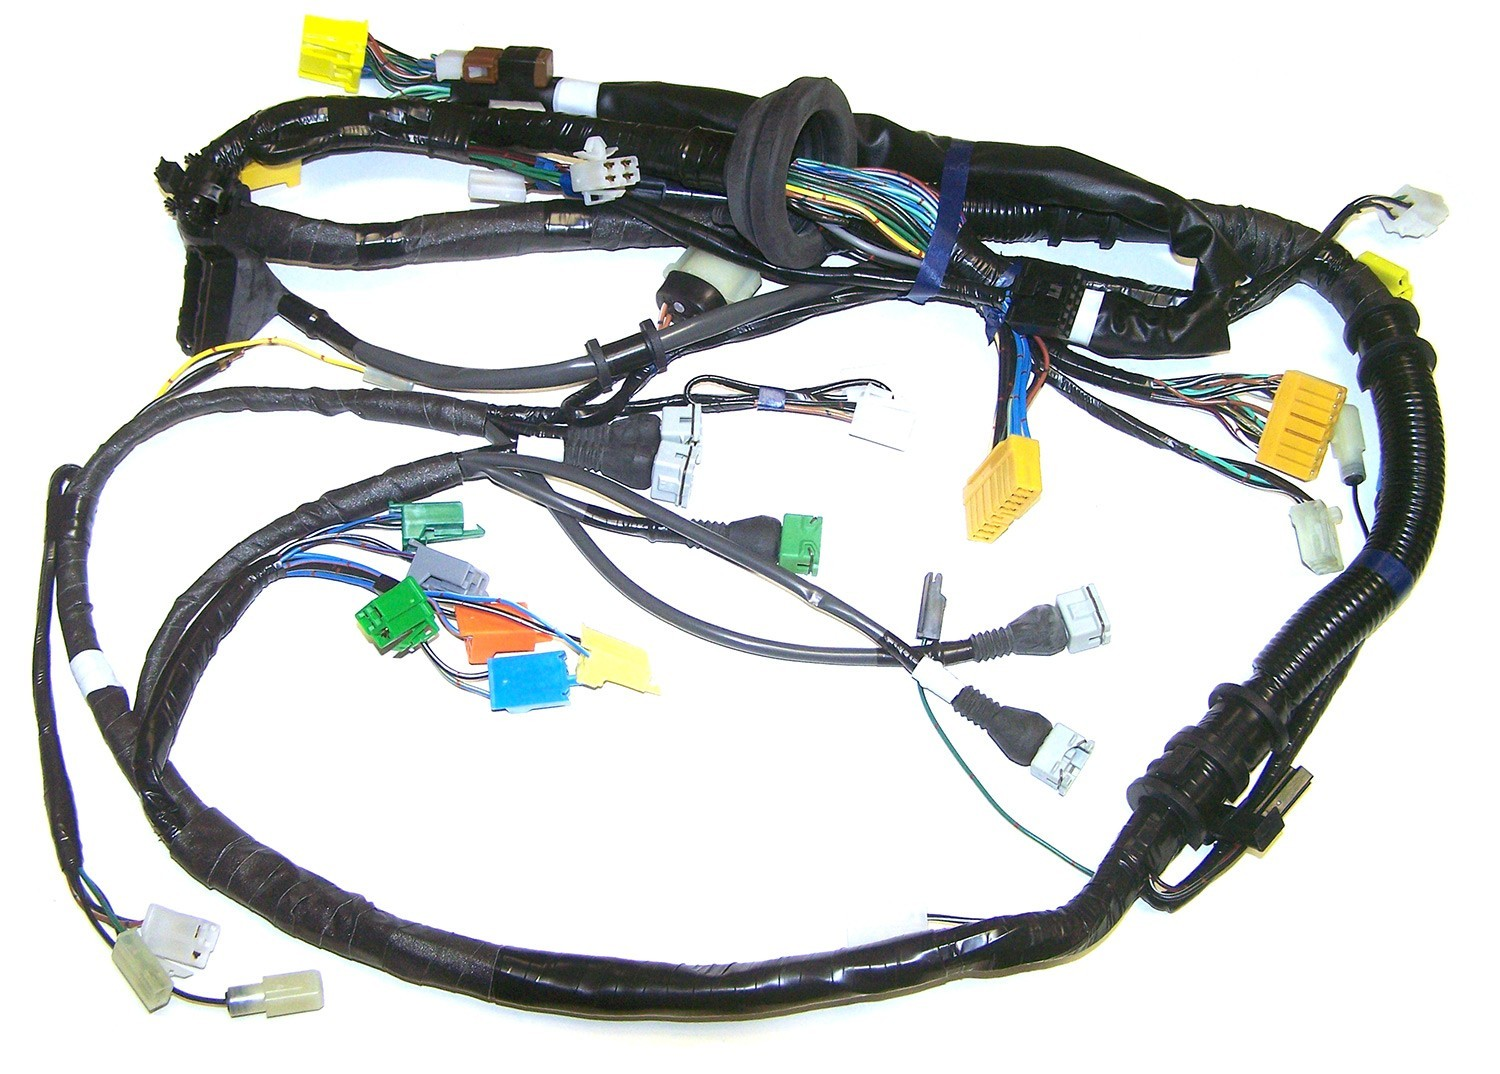 N332 18 051KDetail 87 88 turbo rx7 engine wiring harness (n332 18 051k) rx7 fc wiring harness at n-0.co